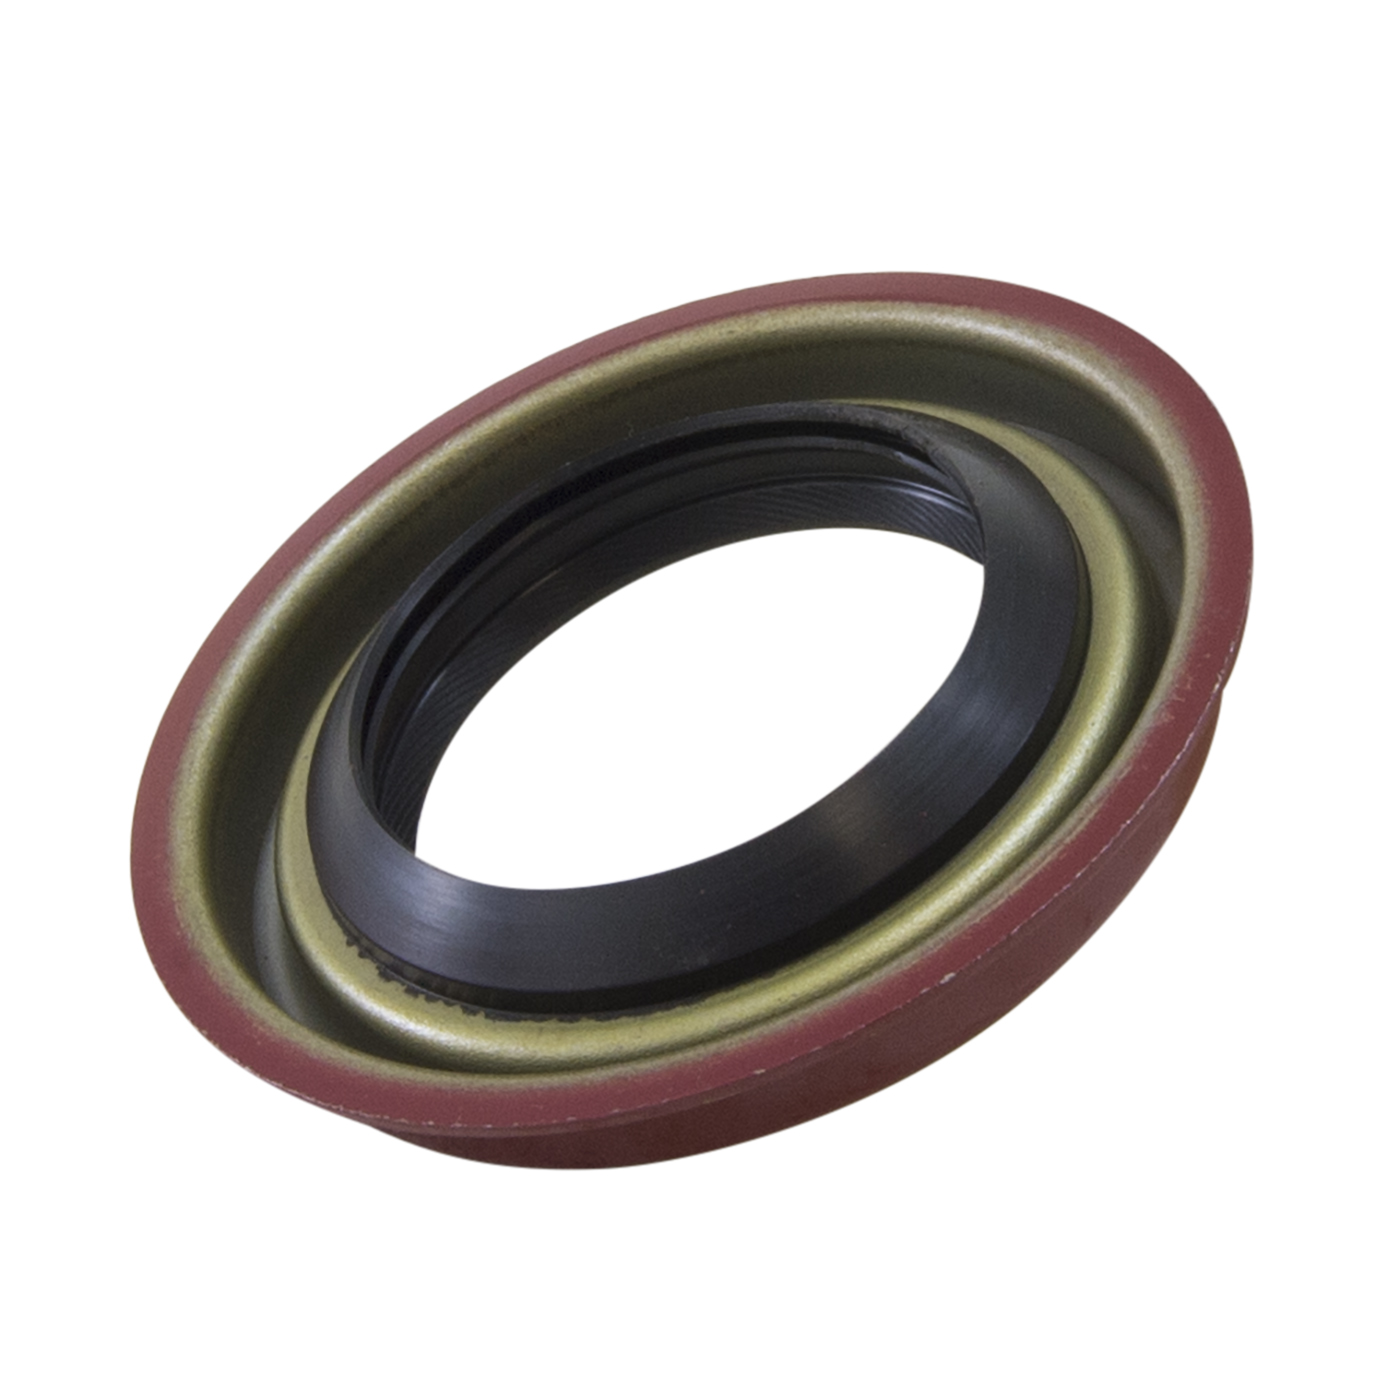 YMS3604 - Pinion seal for 7.5